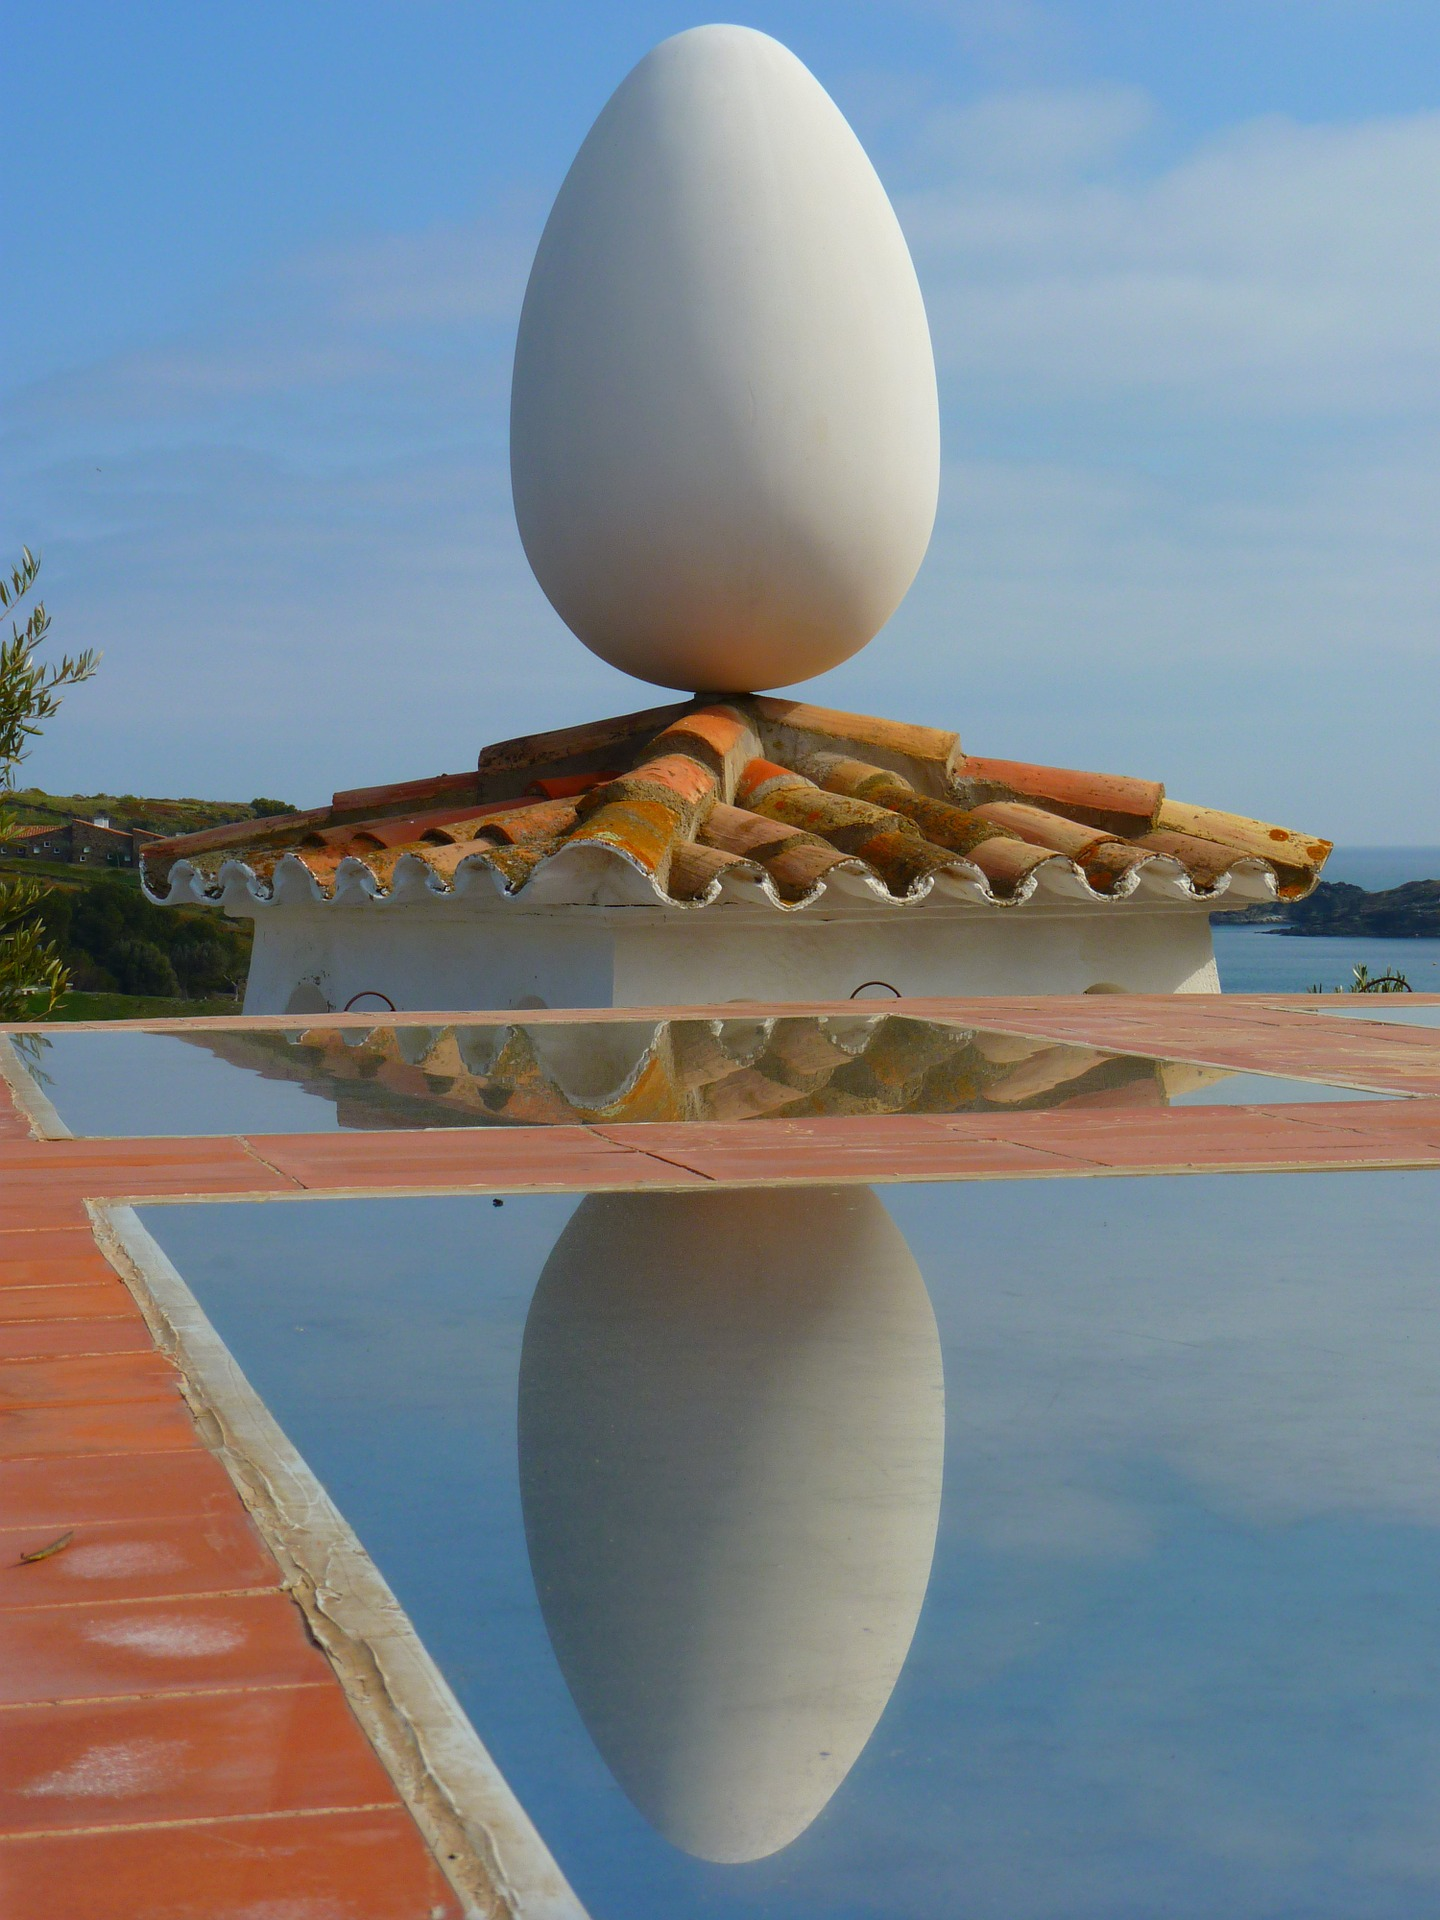 Salvador Dali, Egg at the Dali Theatre Museum. Copyright-free image via MaxPixel